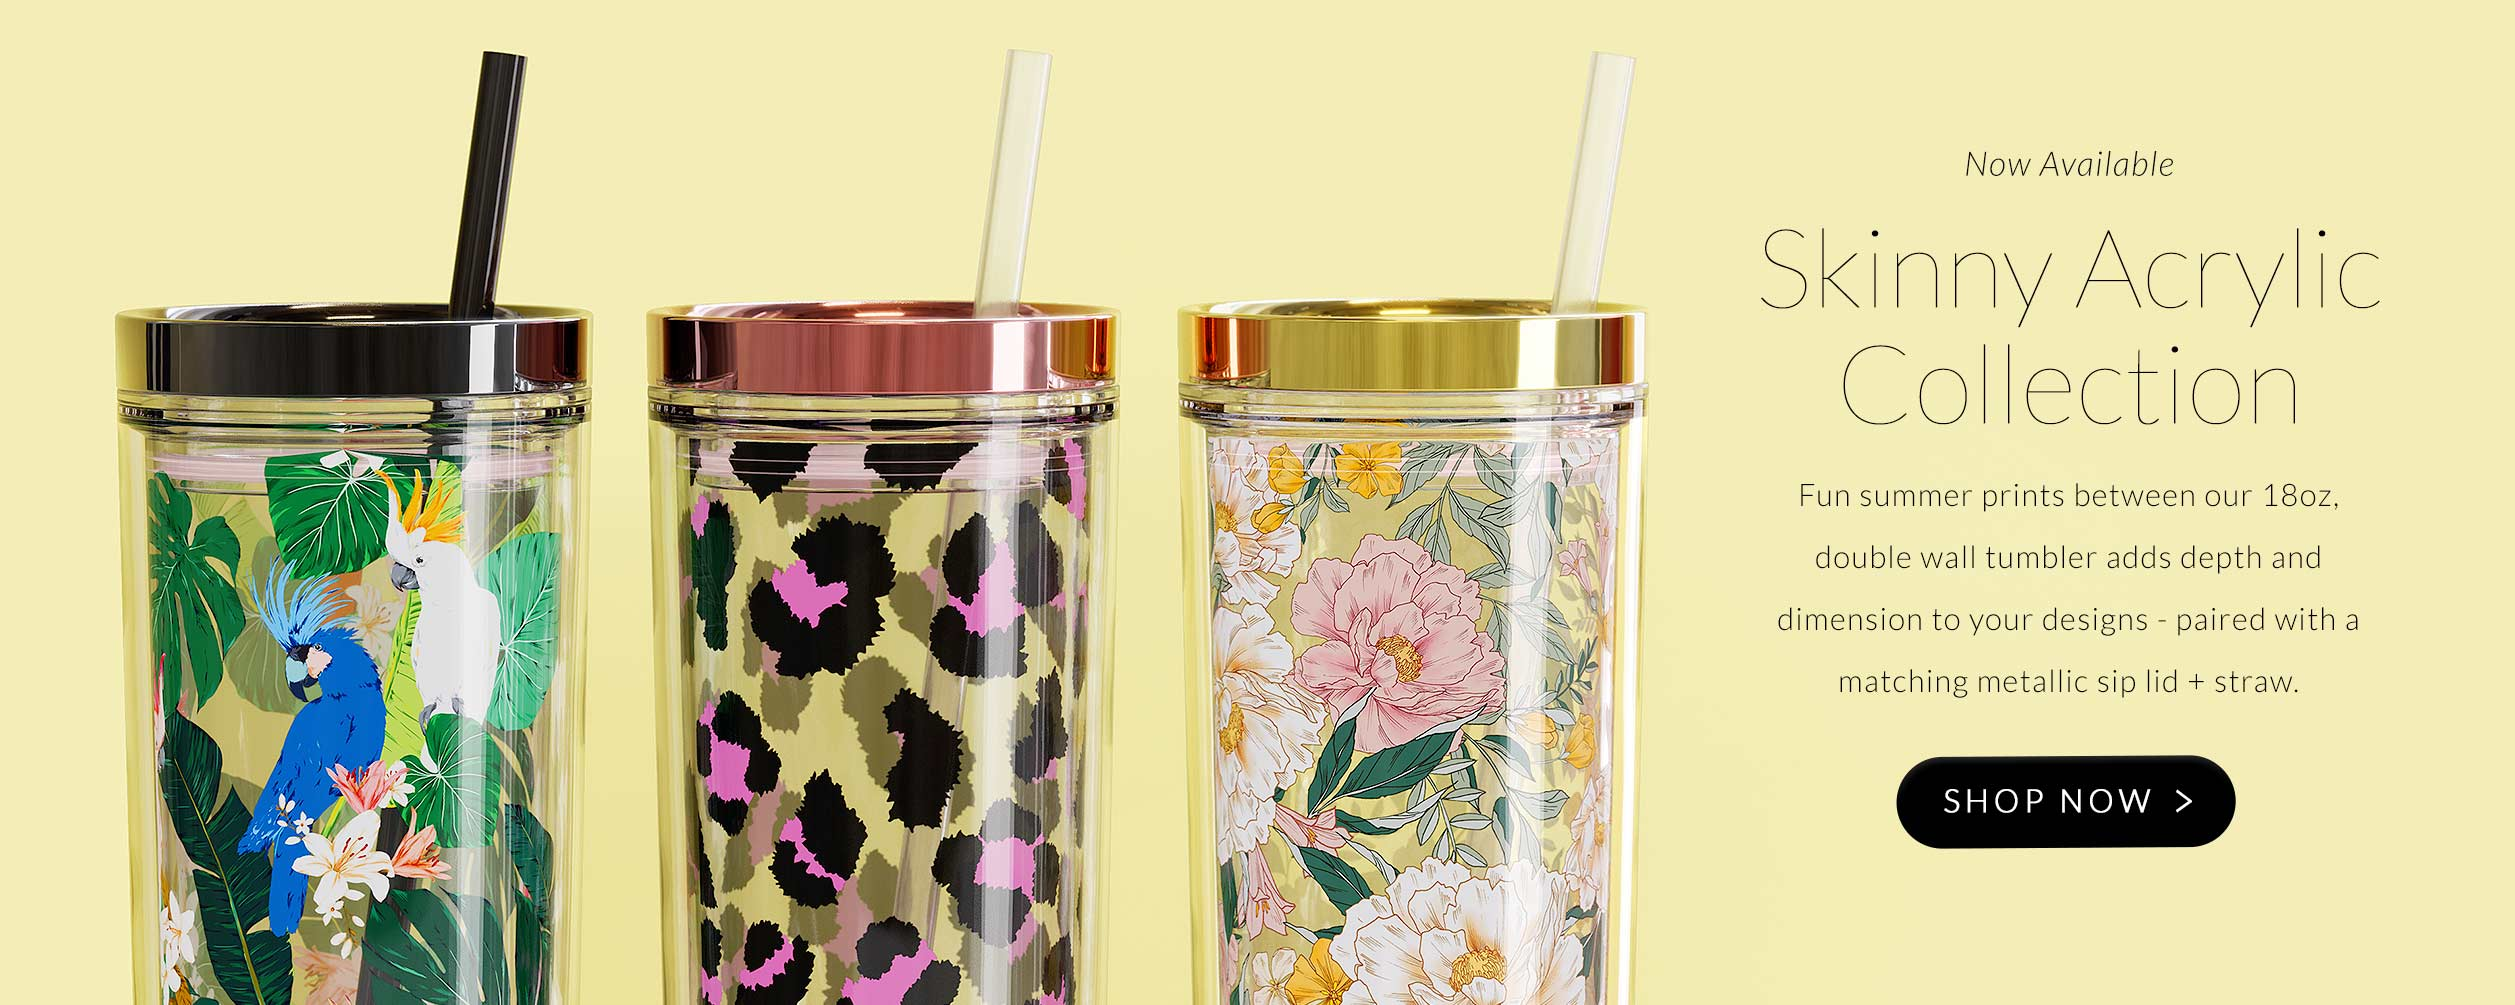 Launch page for our new prints for the Skinny Acrylic 18 oz Tumbler Collection - now available in 3 prints and patterns, metallic lids and matching straws.